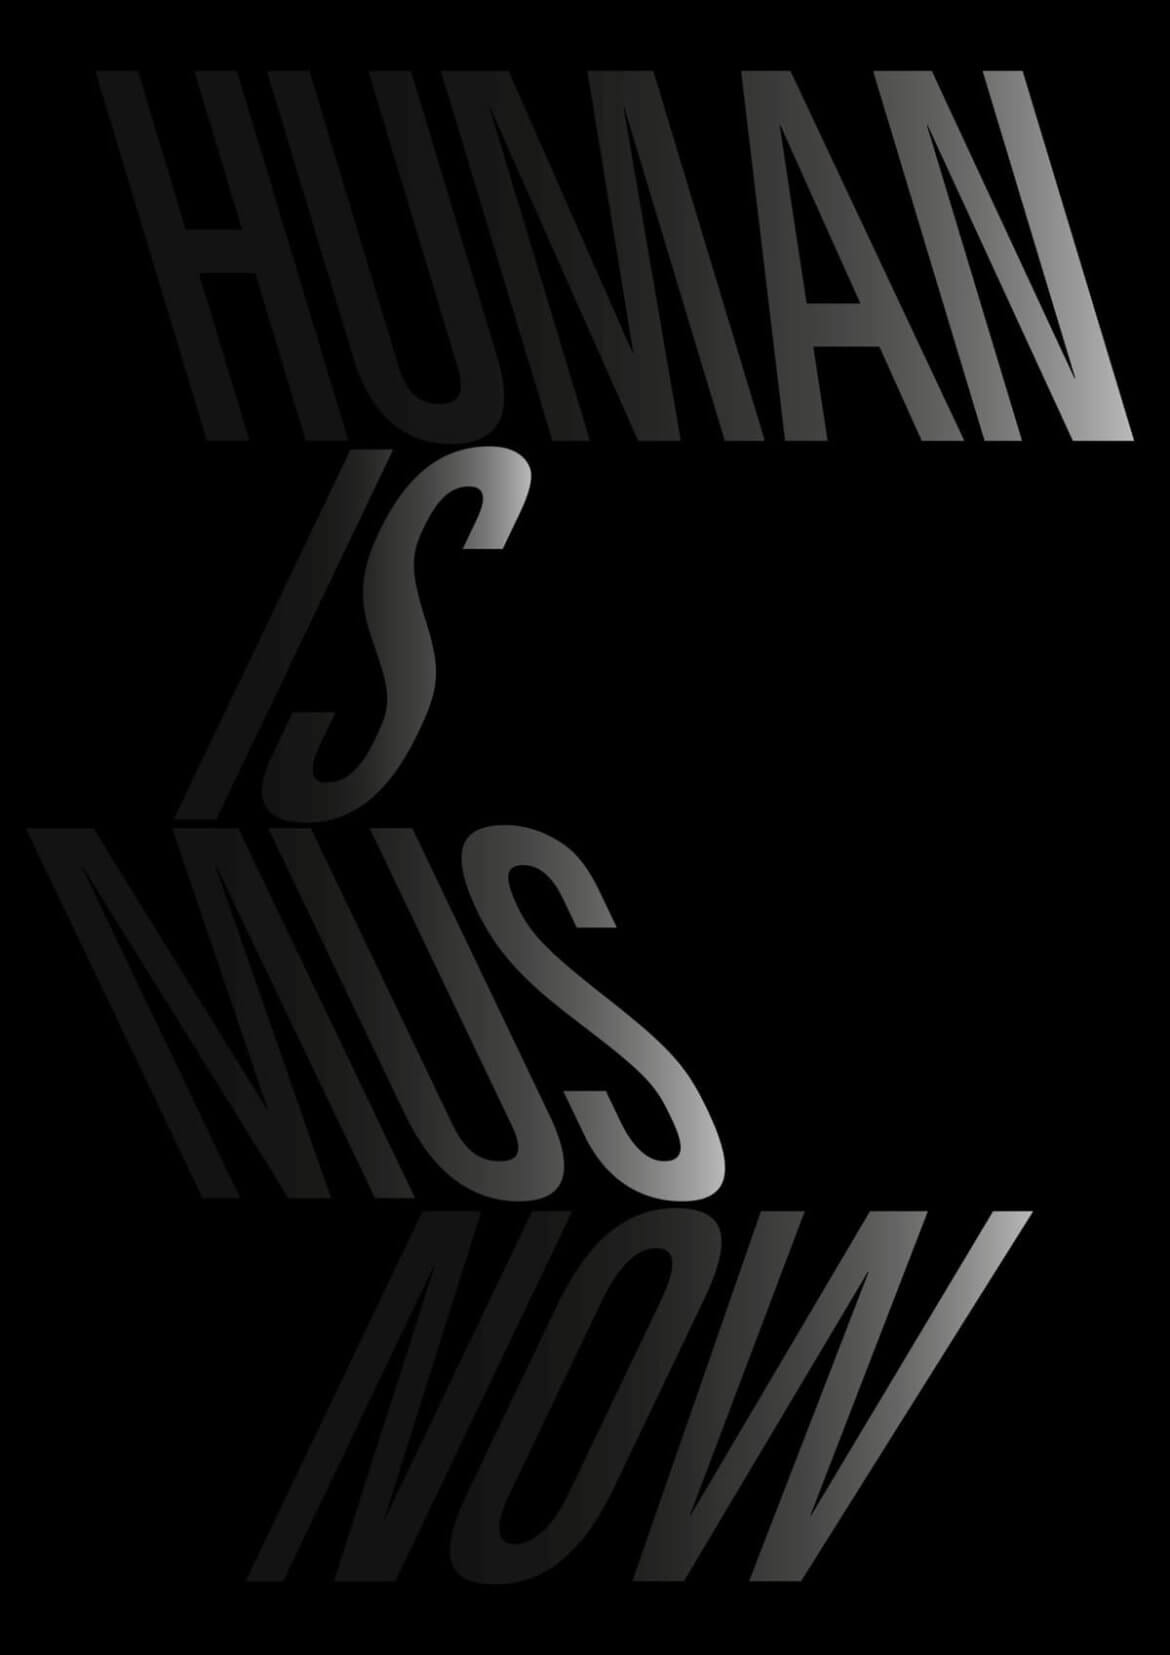 Humanismus | Plakat | Graphicdesign